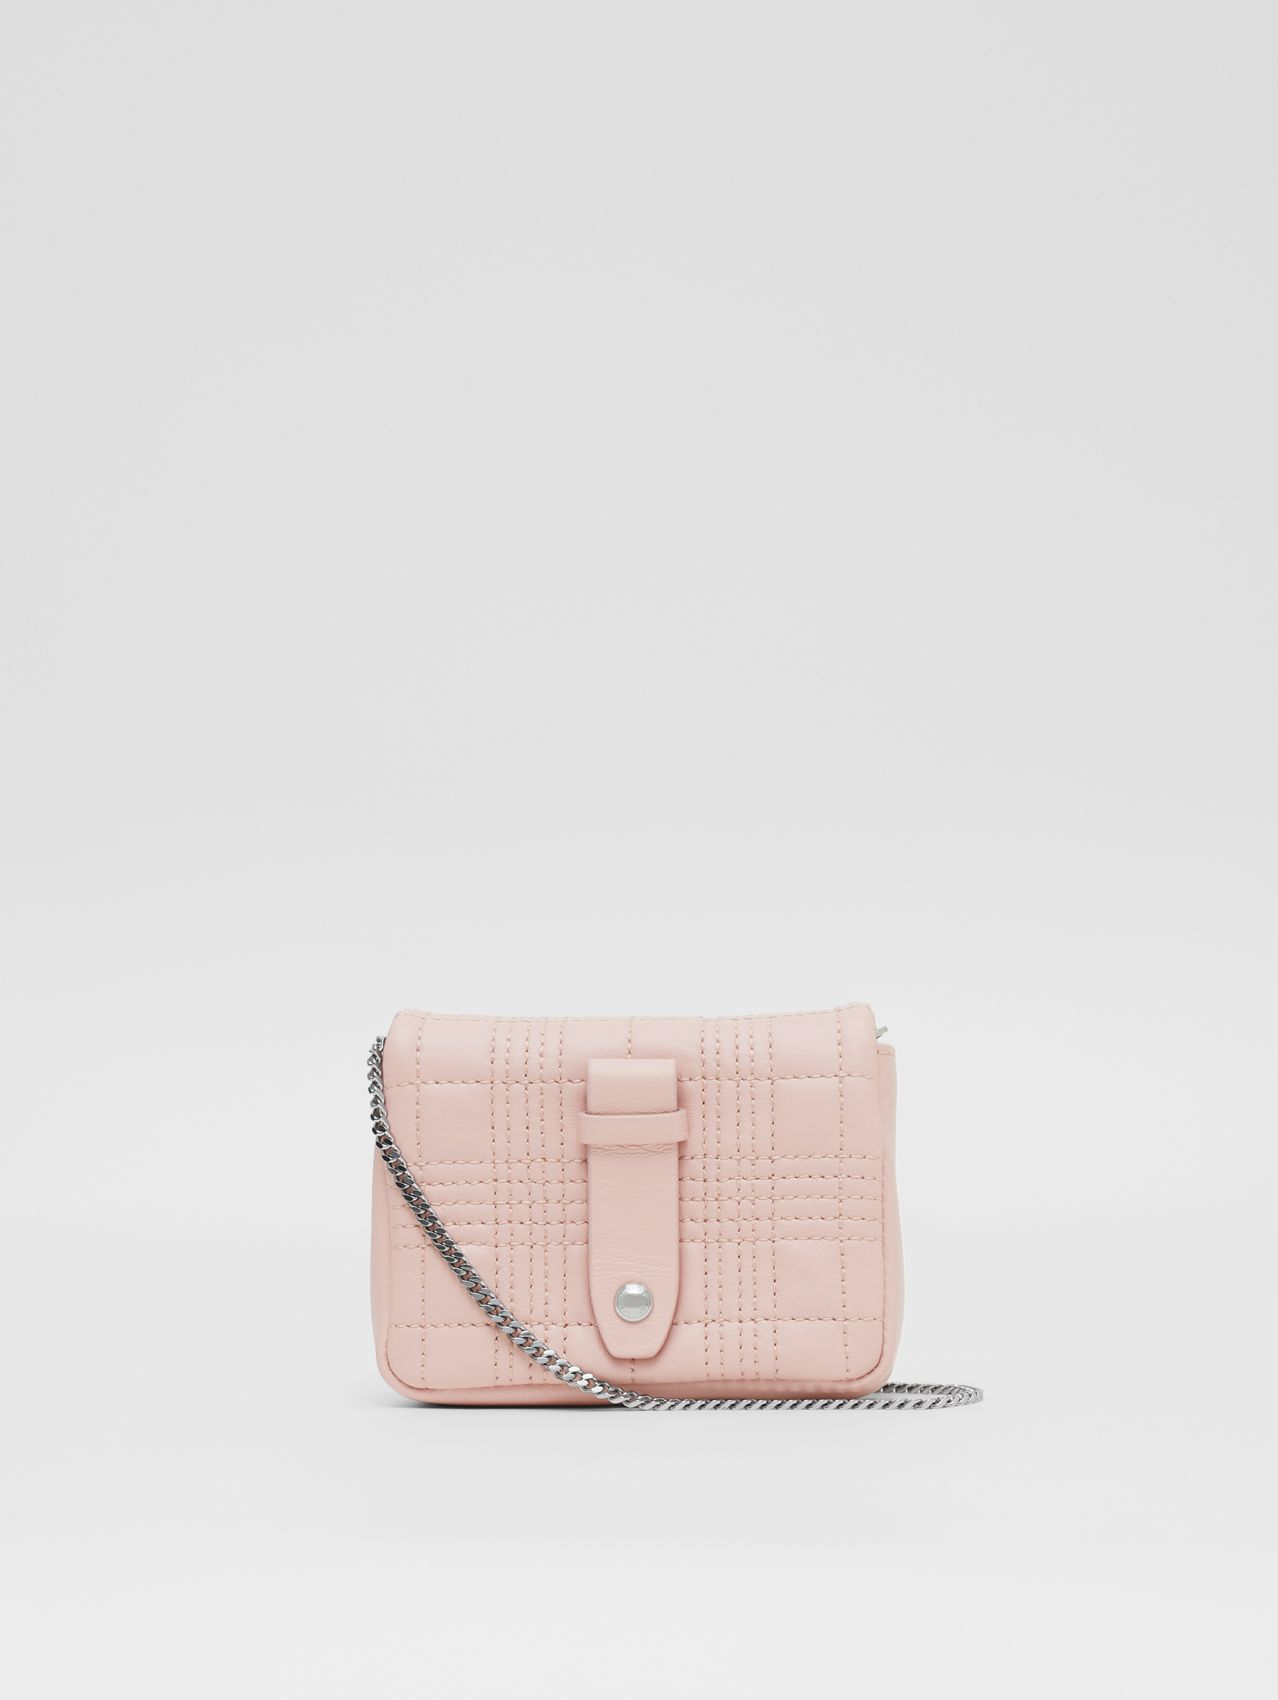 Micro Quilted Lambskin Lola Bag in Blush Pink